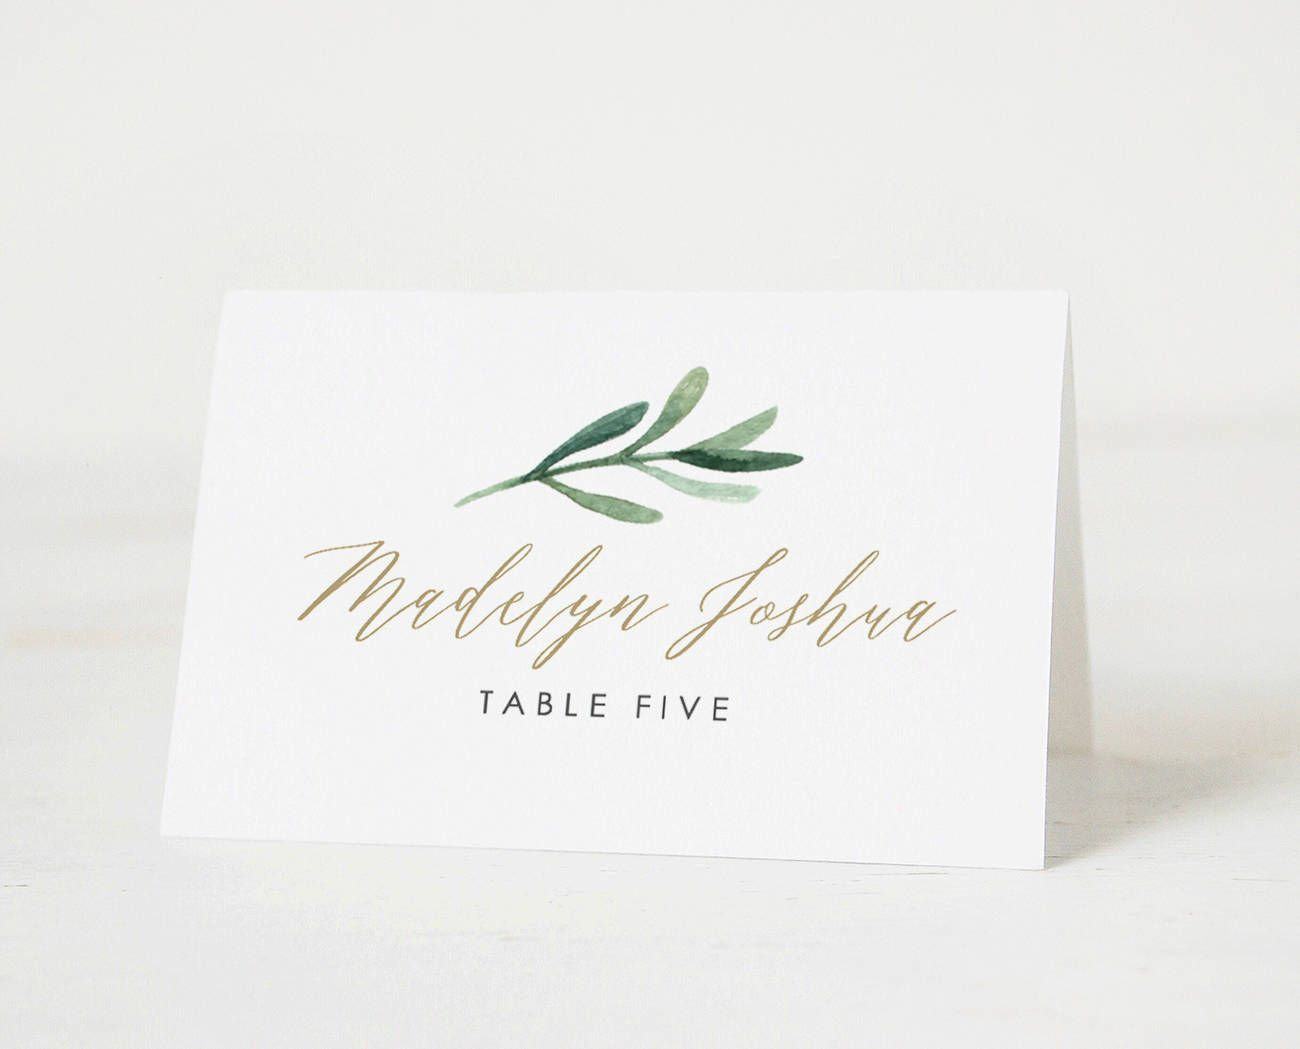 002 Stunning Free Table Name Place Card Template High Def  PlacementFull